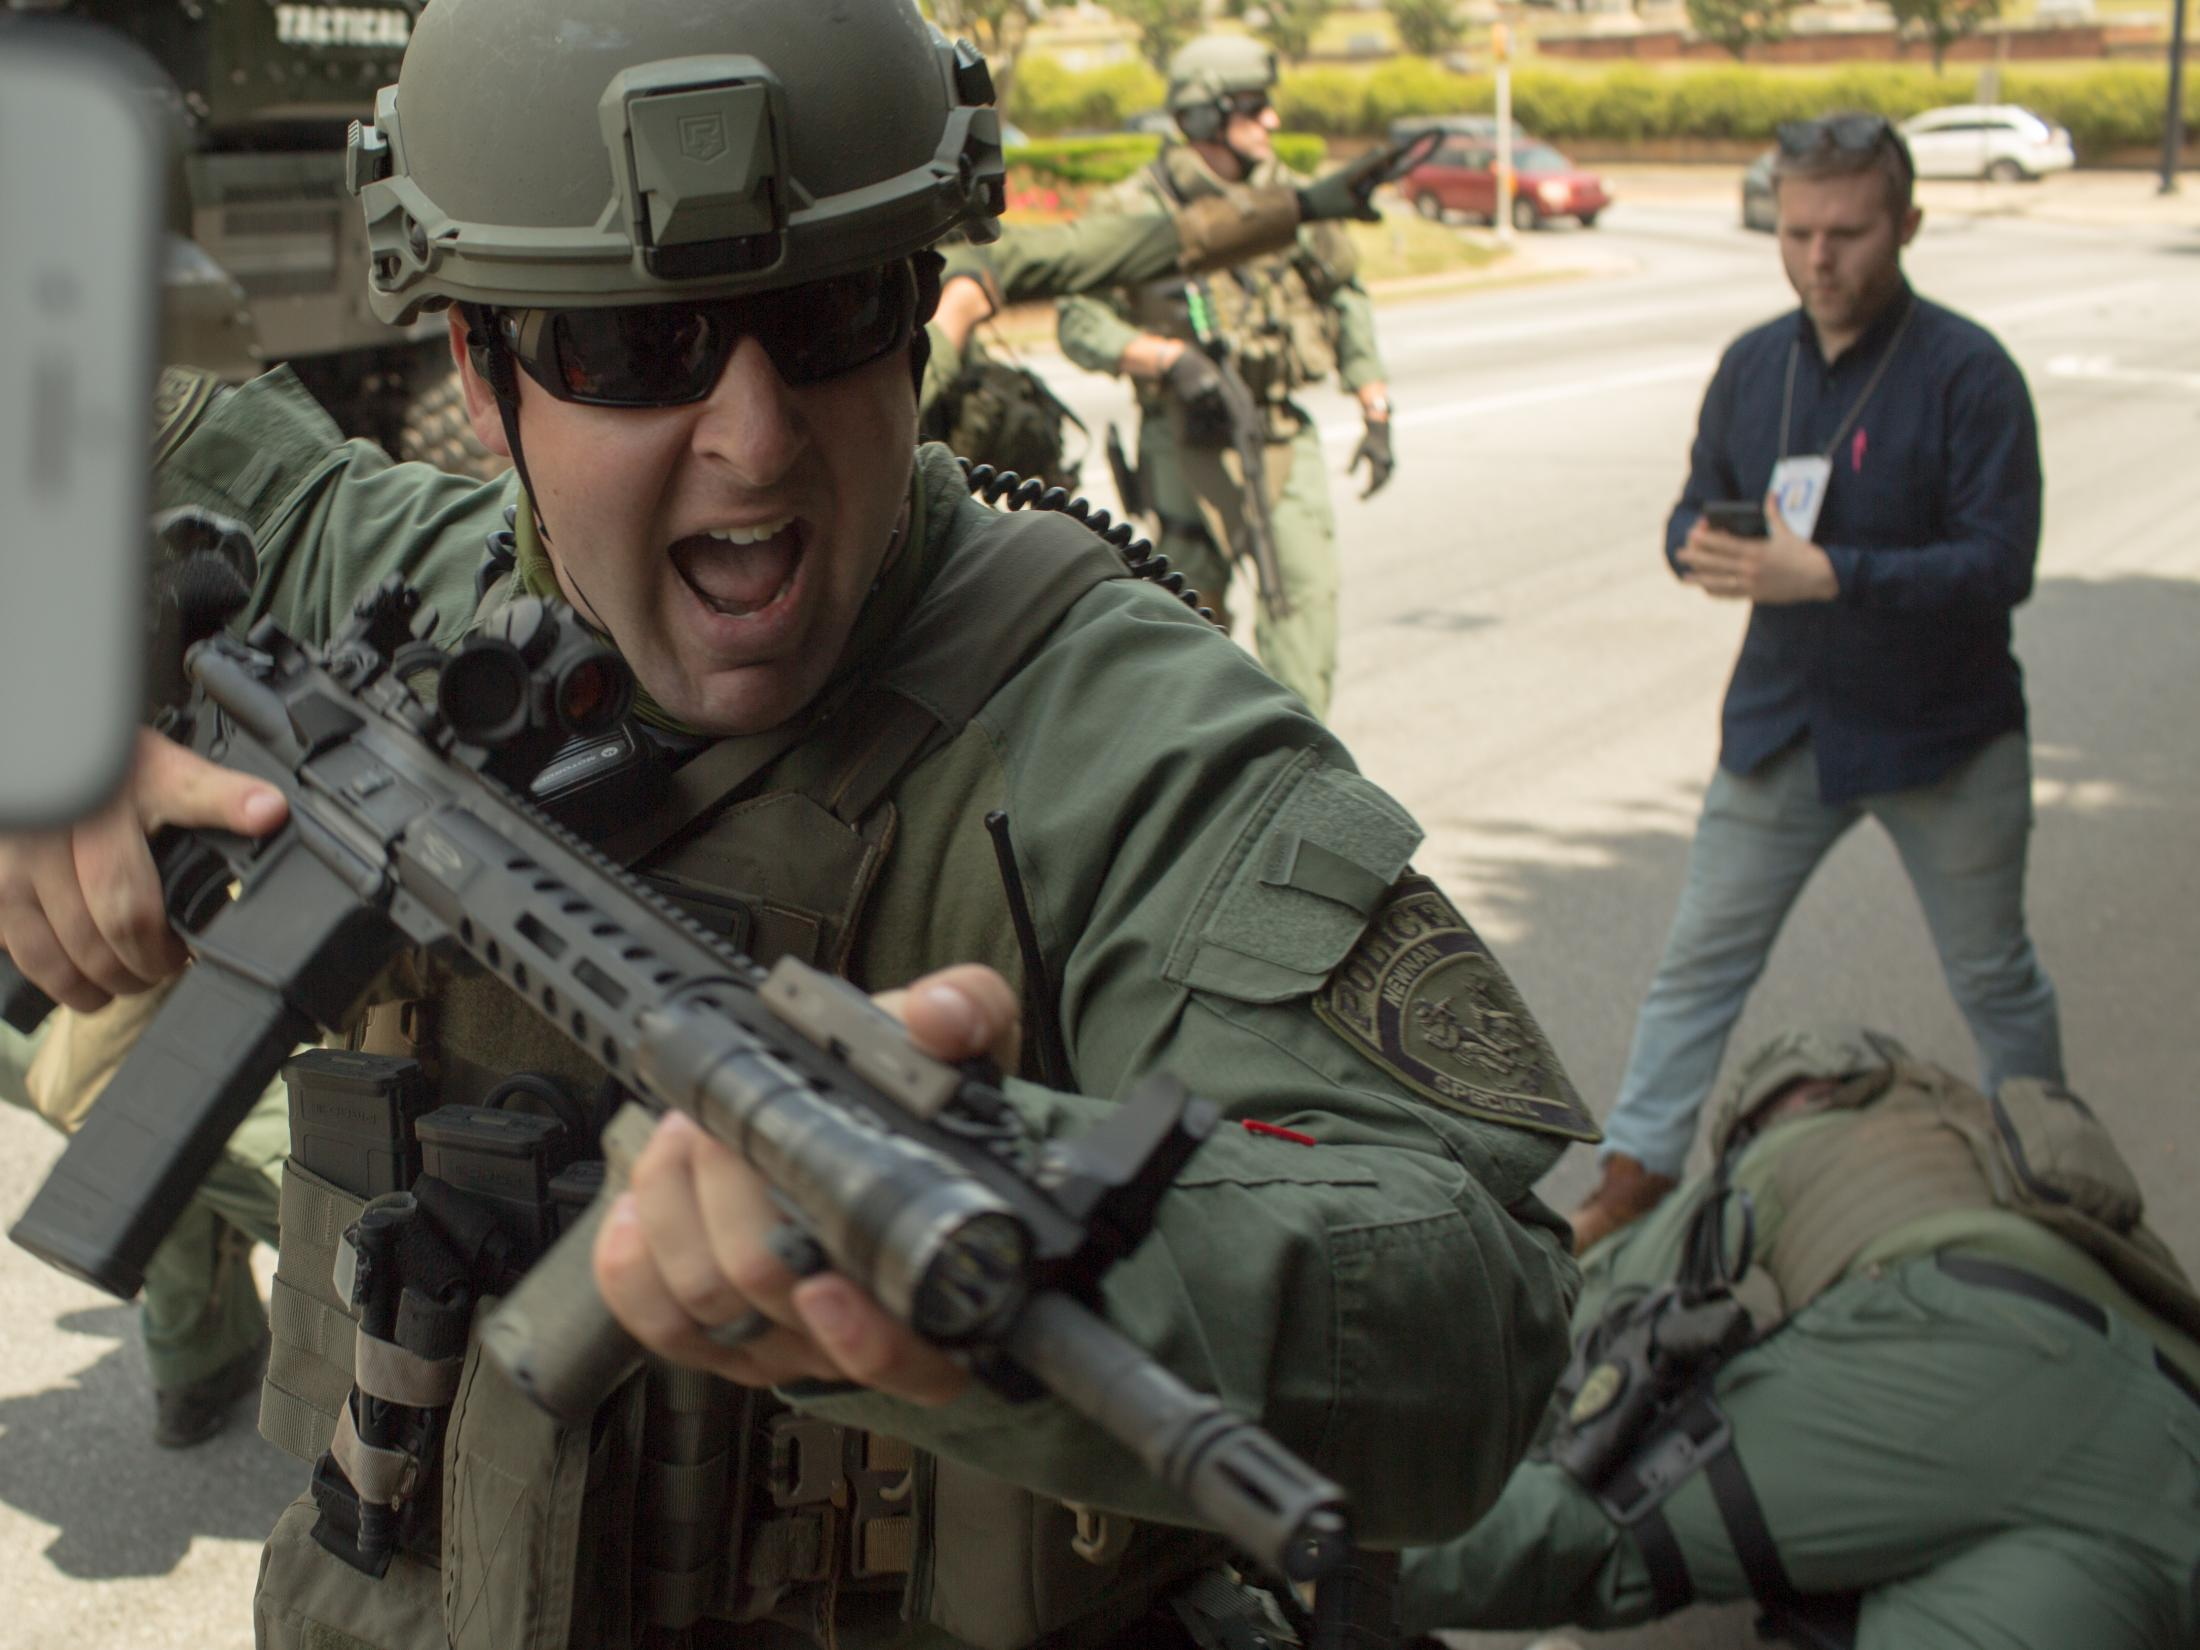 A Newnan police officer points an AR-15 into a crowd of protesters and members of the press while arrests were being made during the No Nazis in Newenan demonstrations on April 21, 2018, in Newnan, GA.